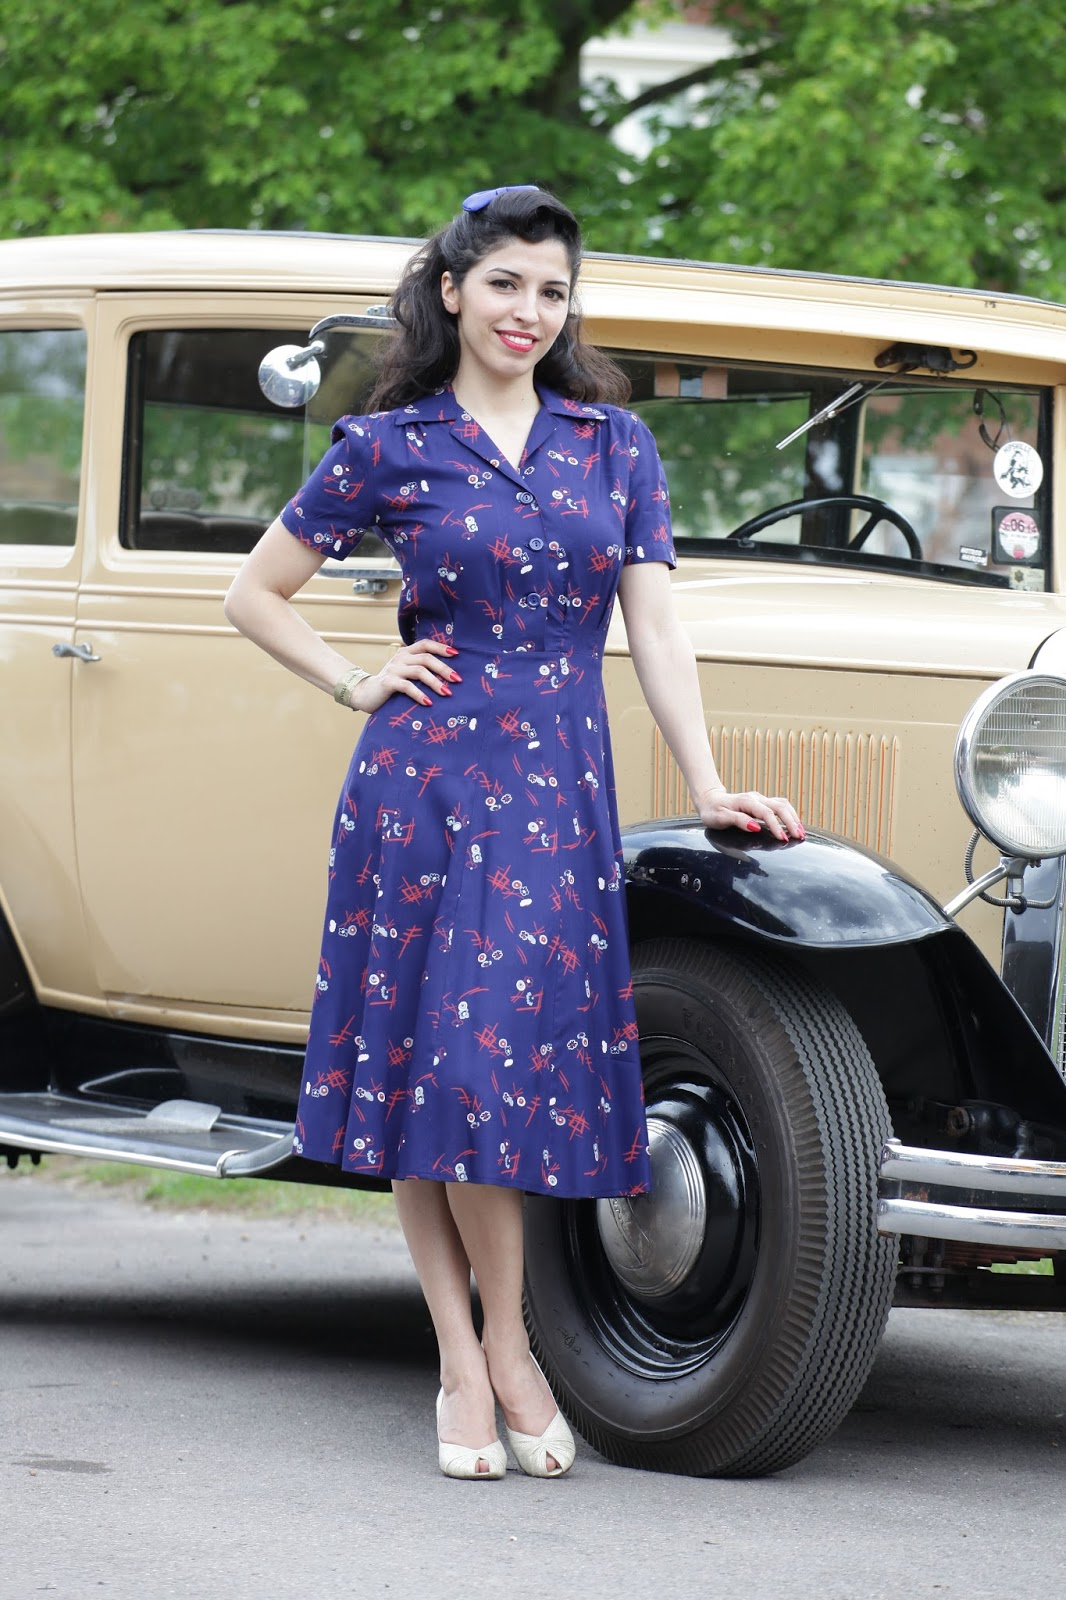 Retro Revolution Where To Find Vintage Clothing In: The Adventures Of Miss Bamboo: Reproduction Vintage 1940's